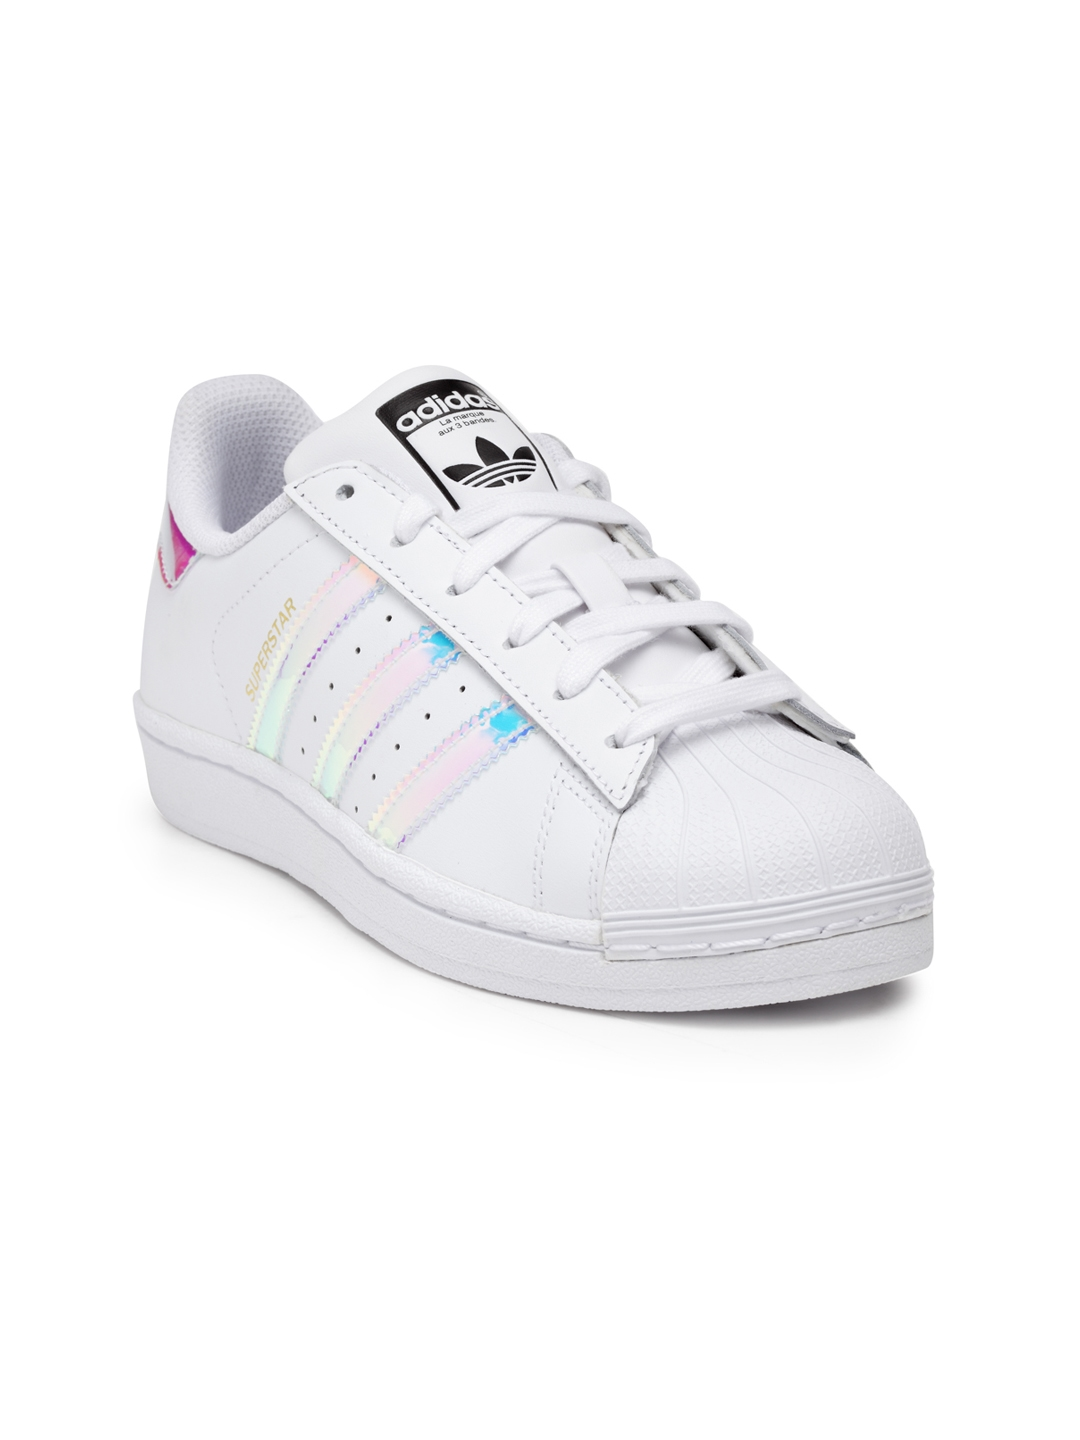 b4a24ffacf67 Buy ADIDAS Originals Kids White Superstar Sneakers - Casual Shoes ...